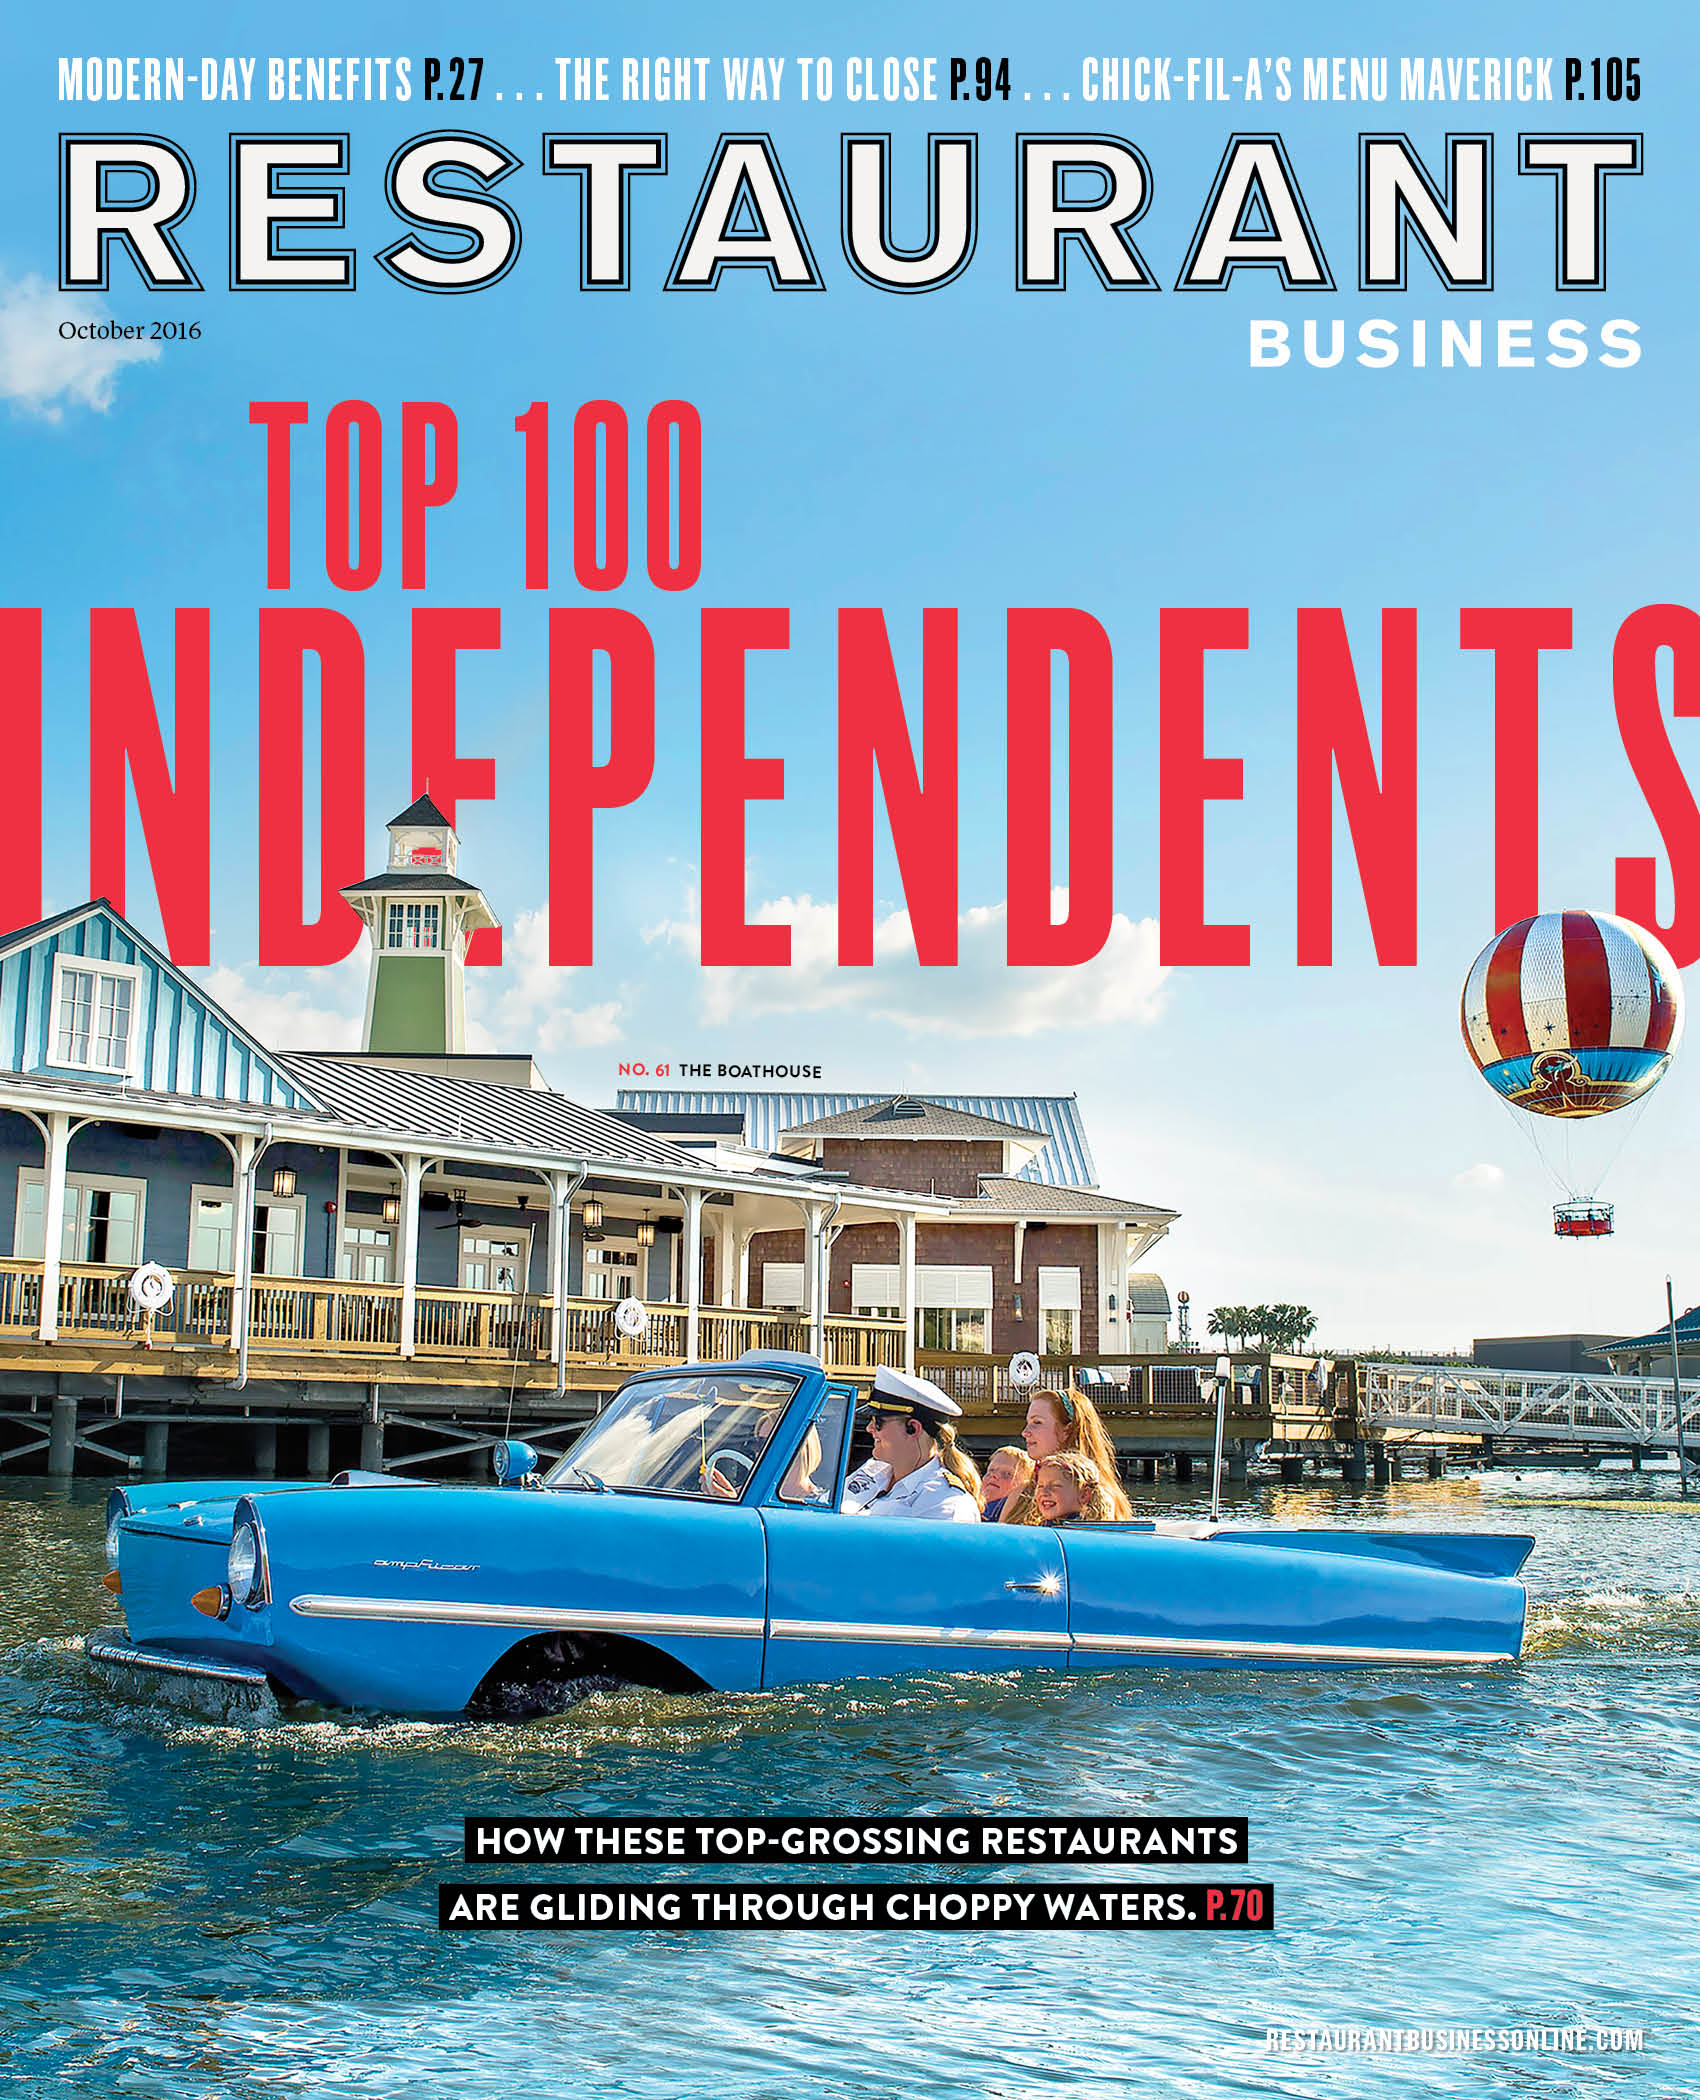 Restaurant Business Magazine October 2016 Issue